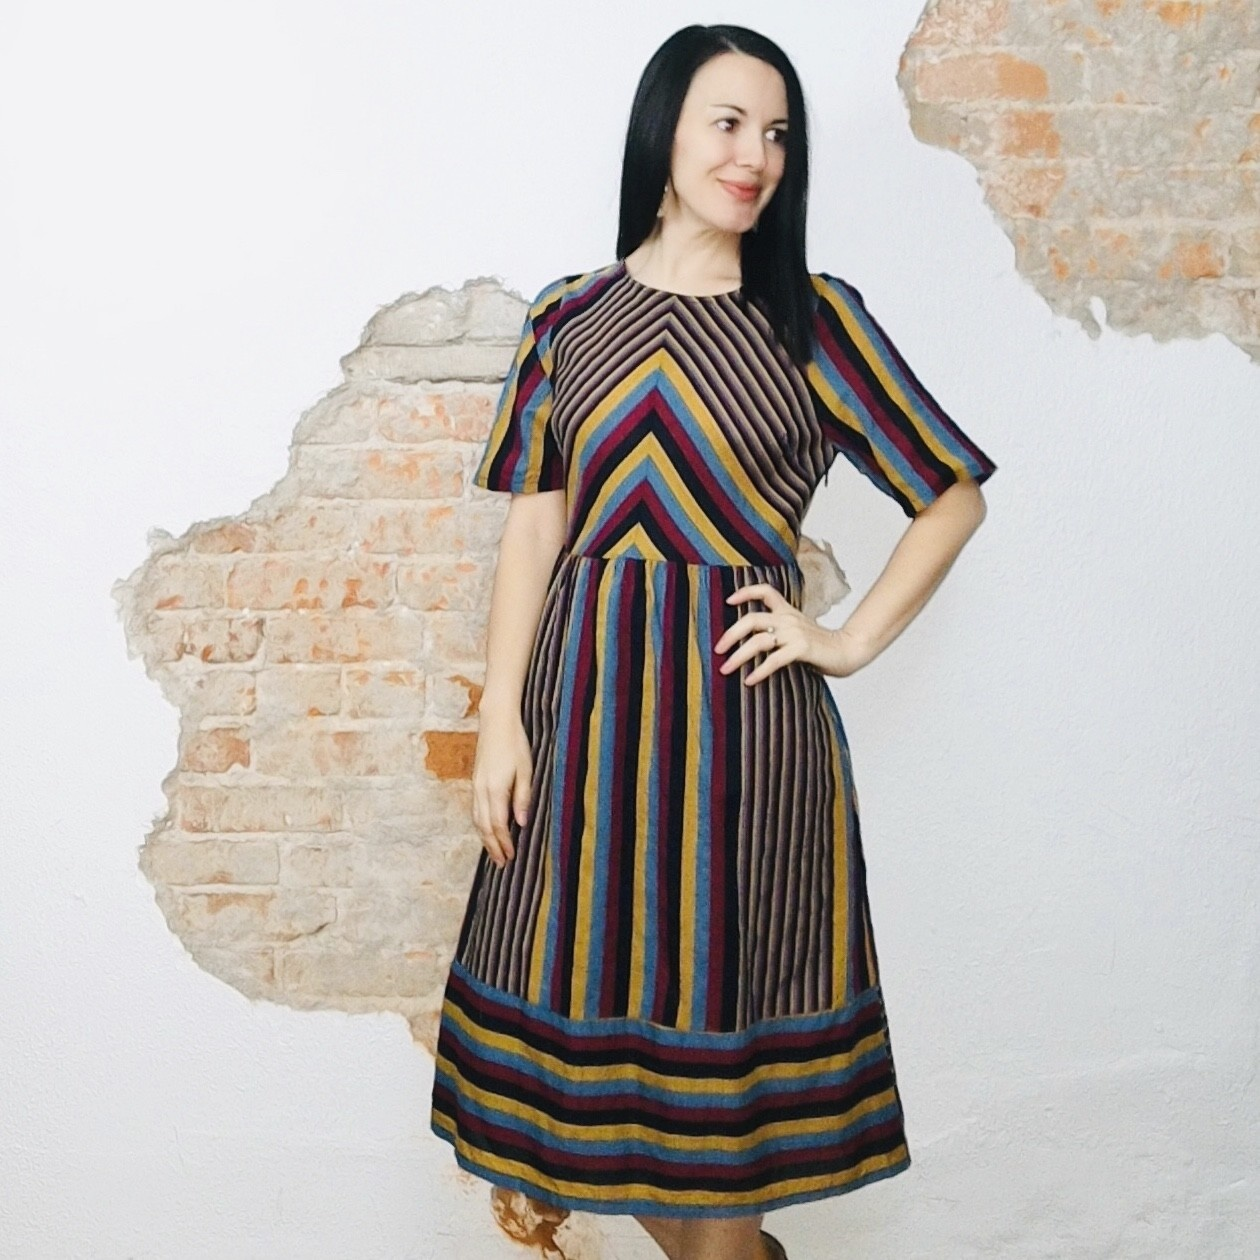 The Colorful Striped Dress